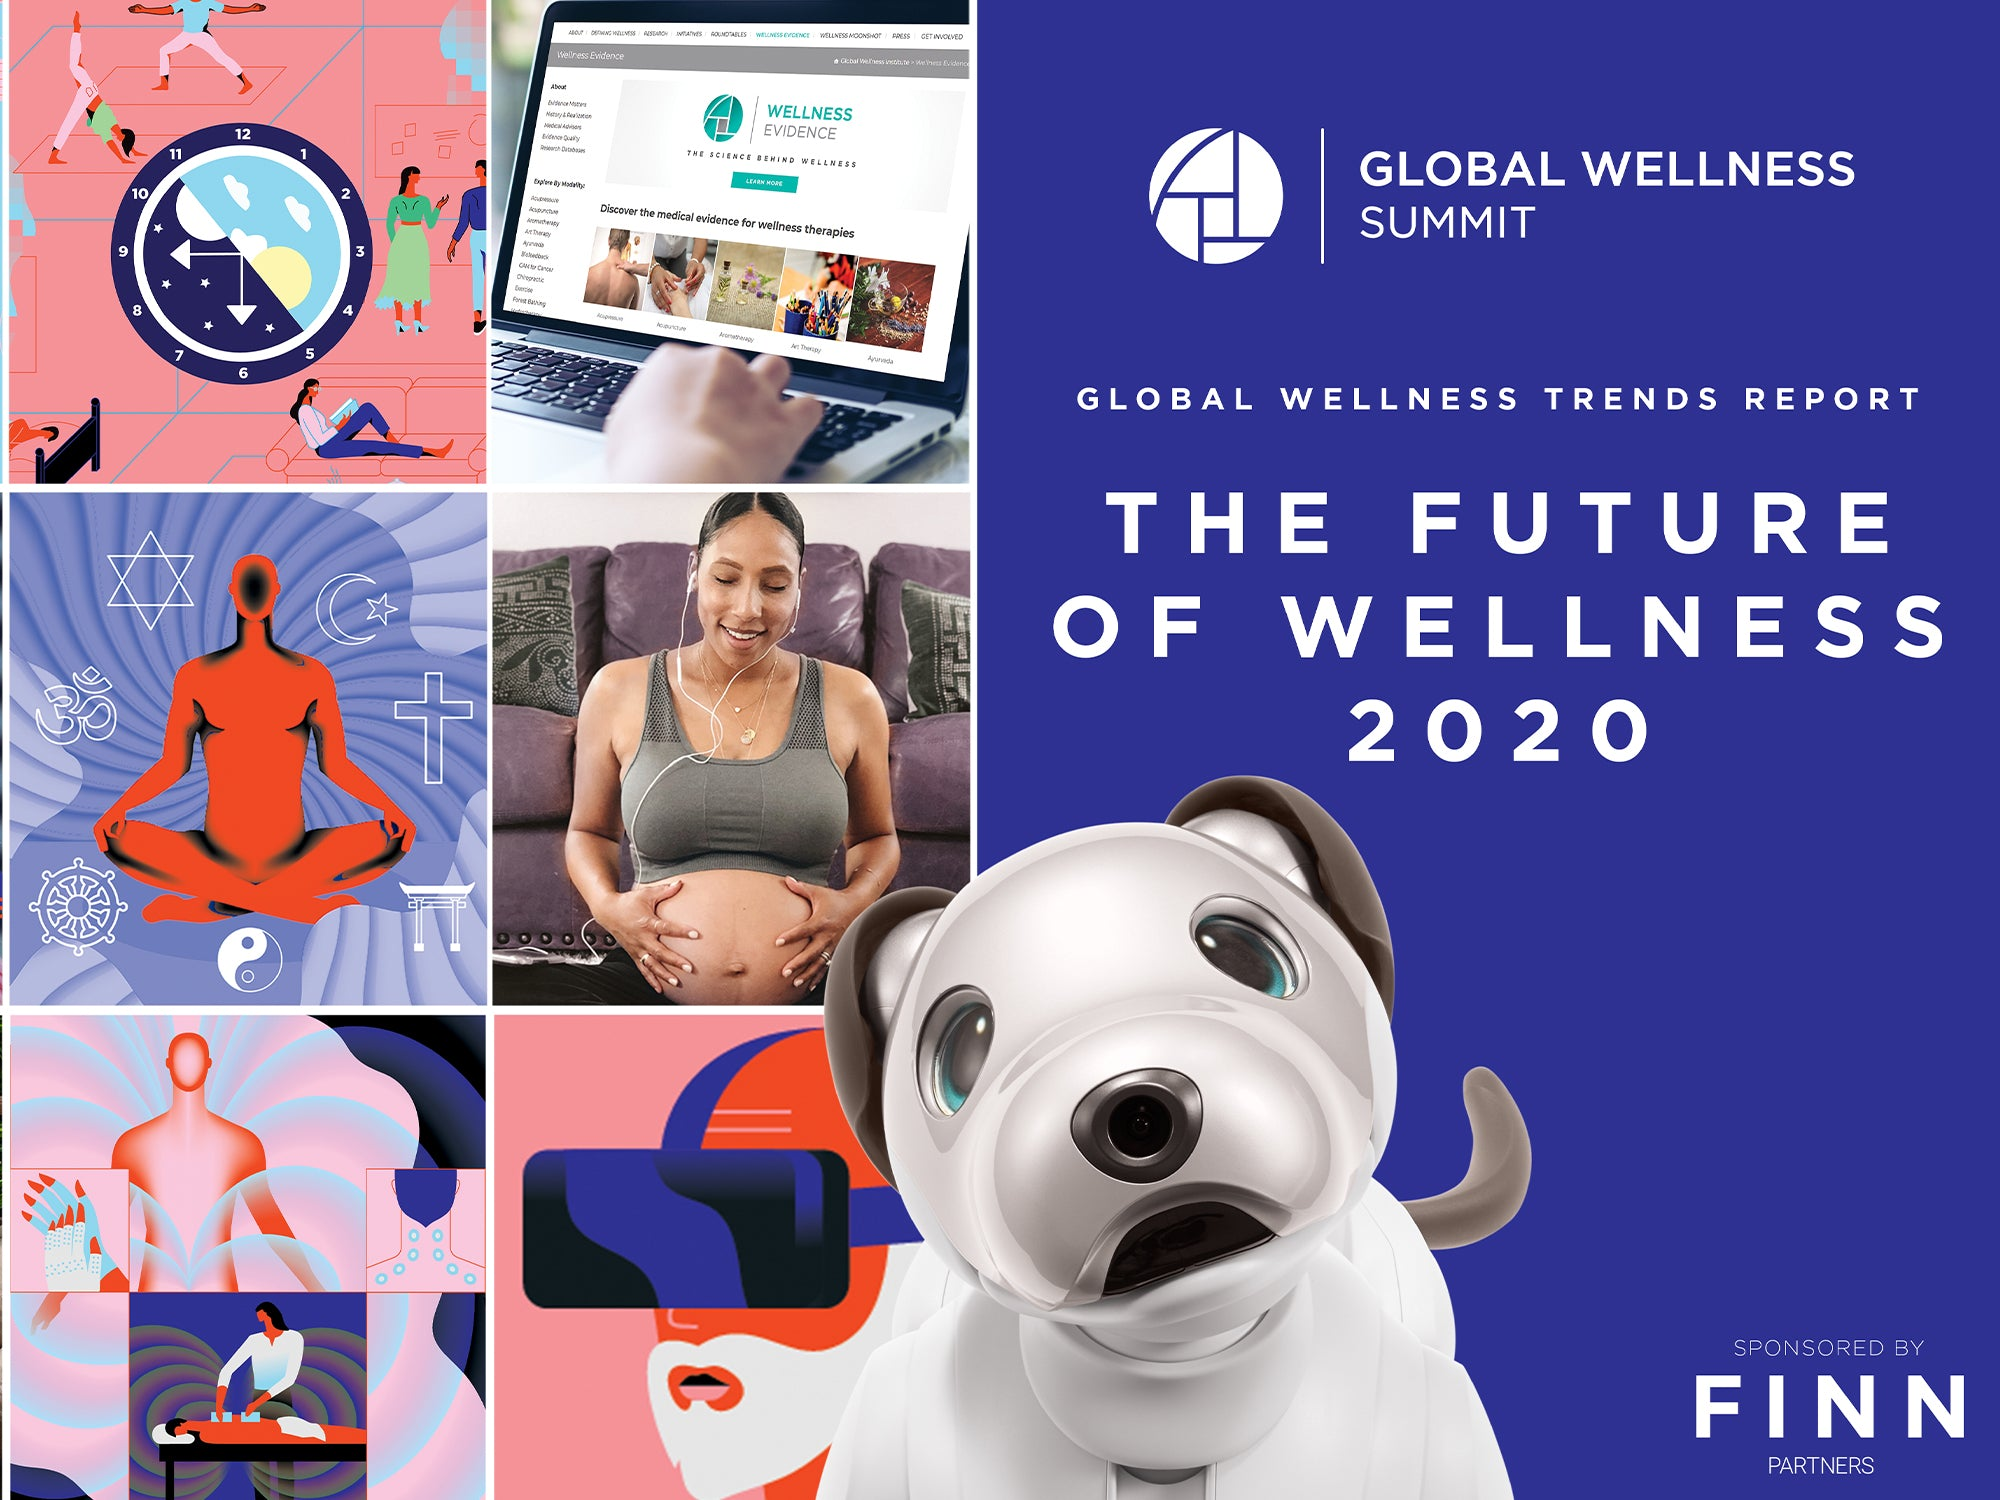 GLOBAL WELLNESS TRENDS REPORT : THE FUTURE OF WELLNESS 2020